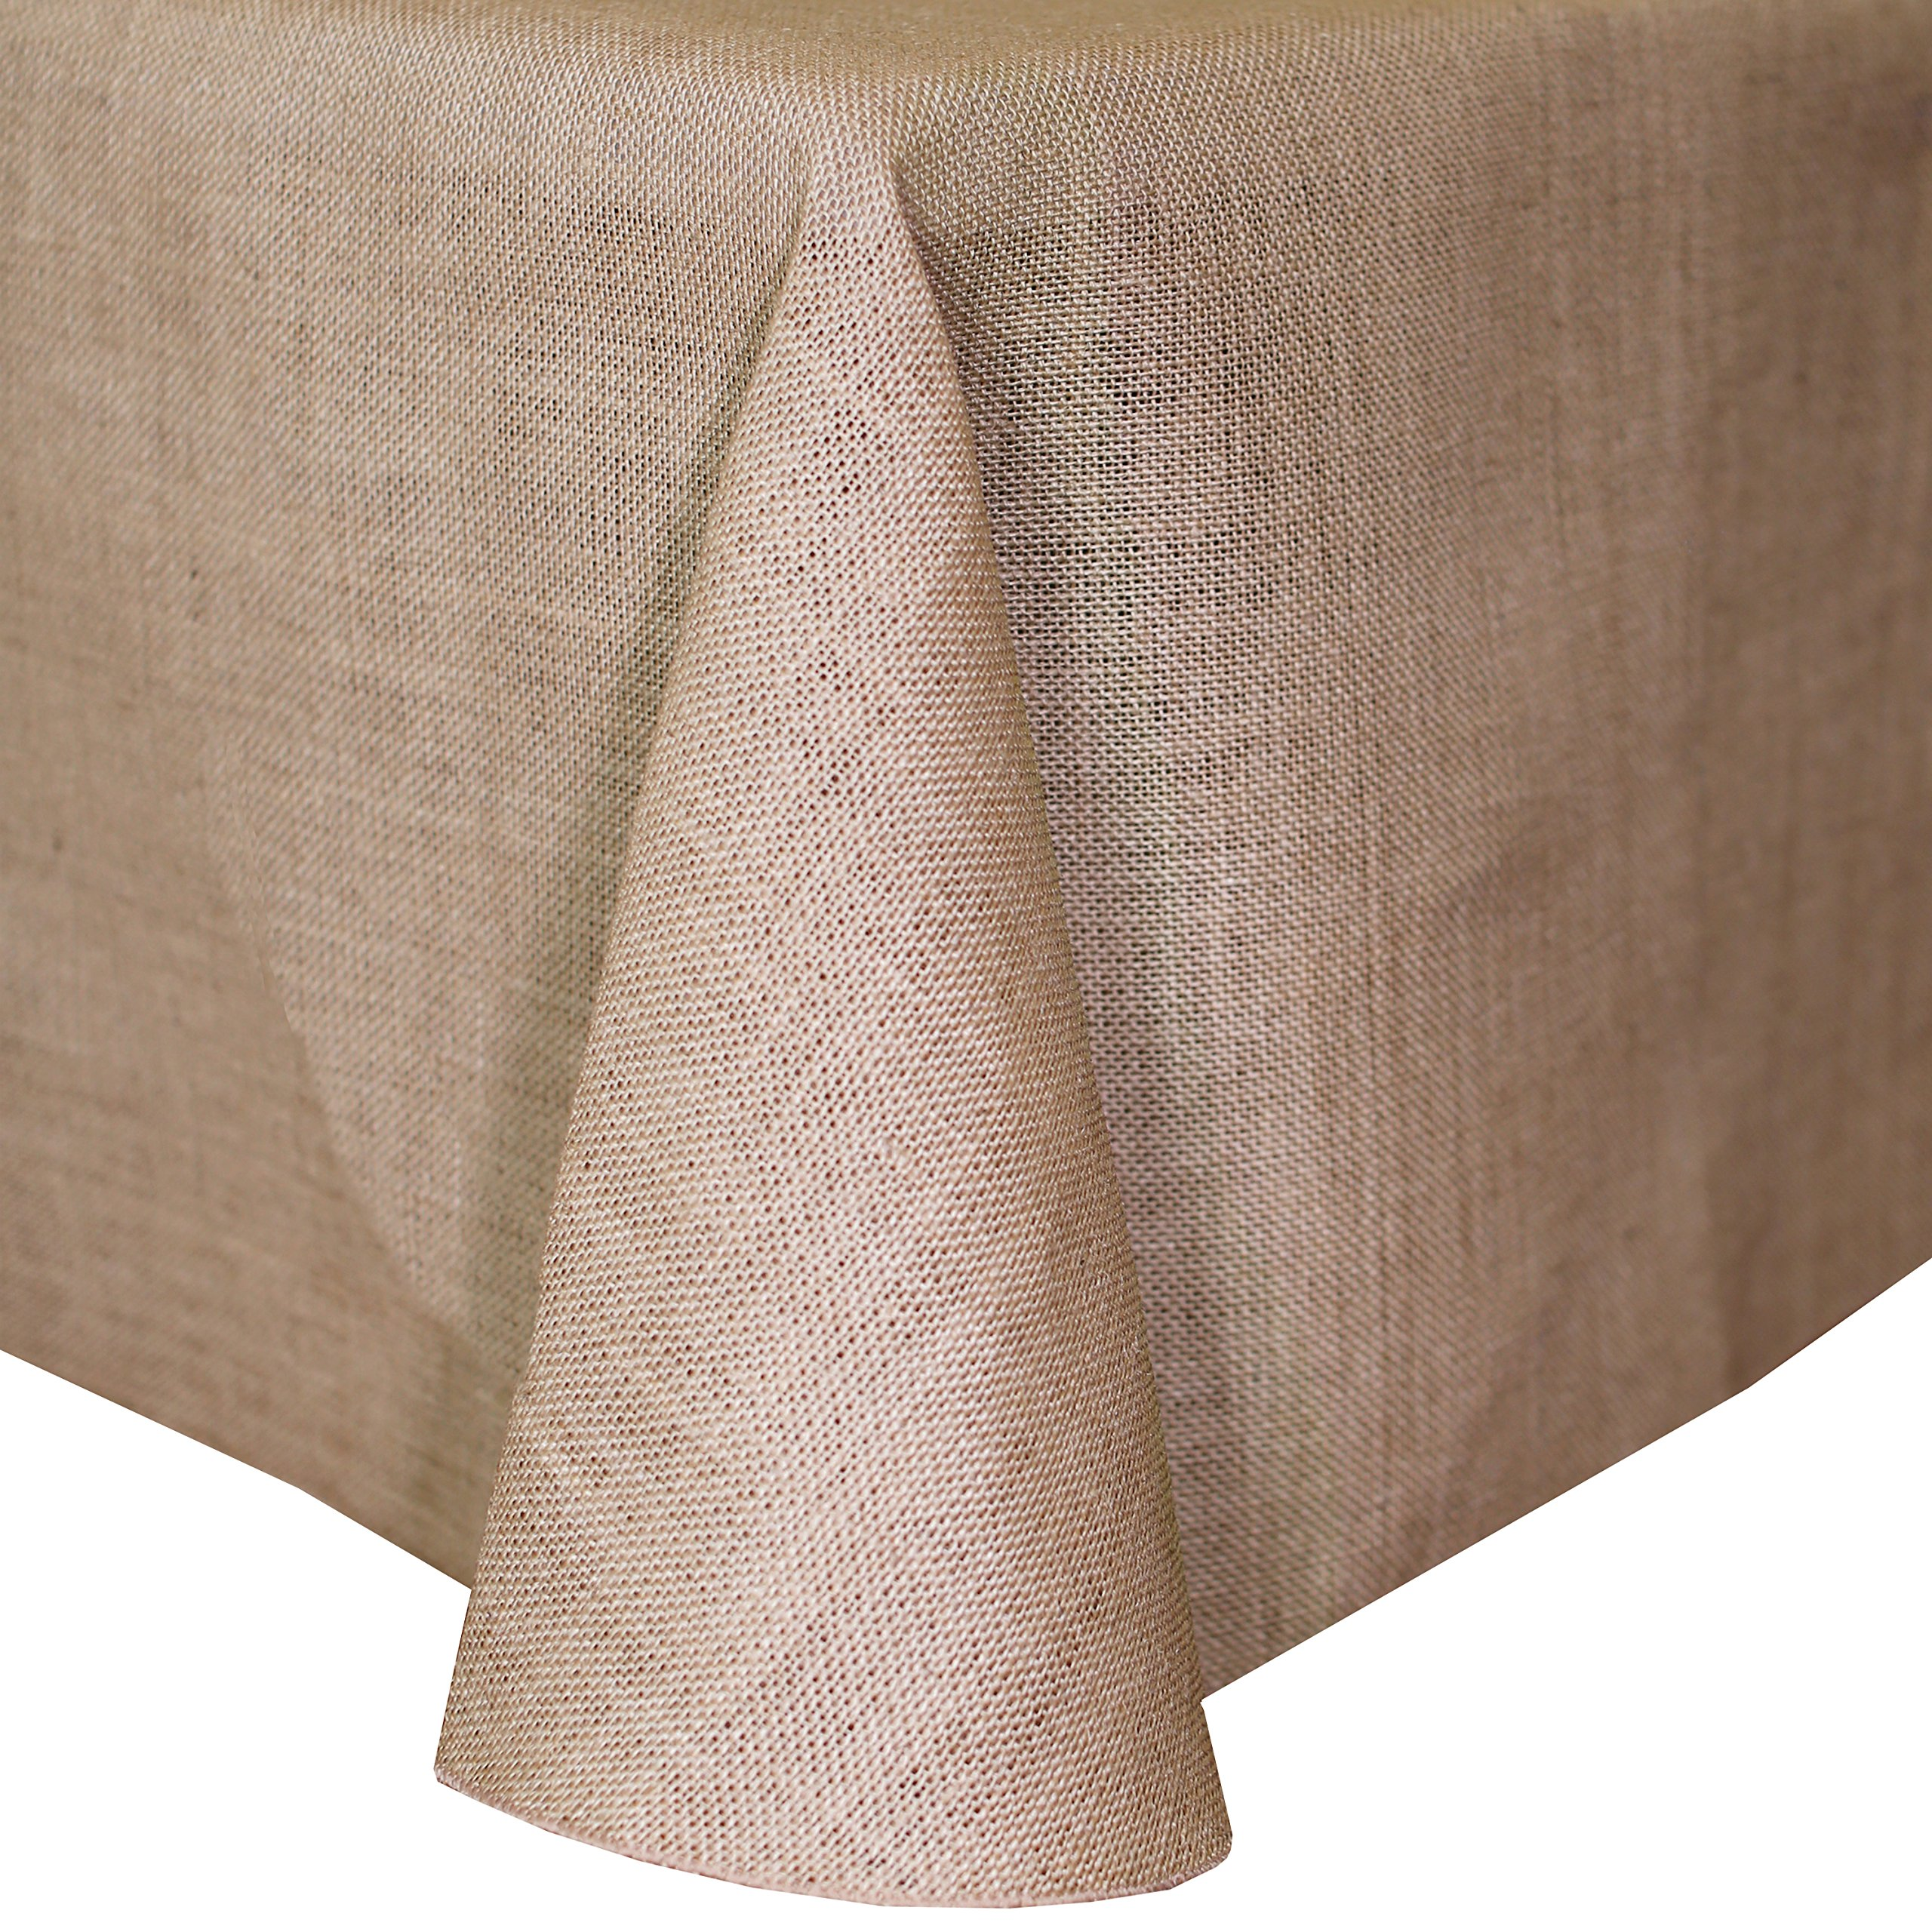 Ultimate Textile (3 Pack) Burlap 108 x 156-Inch Rectangle Jute Tablecloth with Rounded Corners Natural